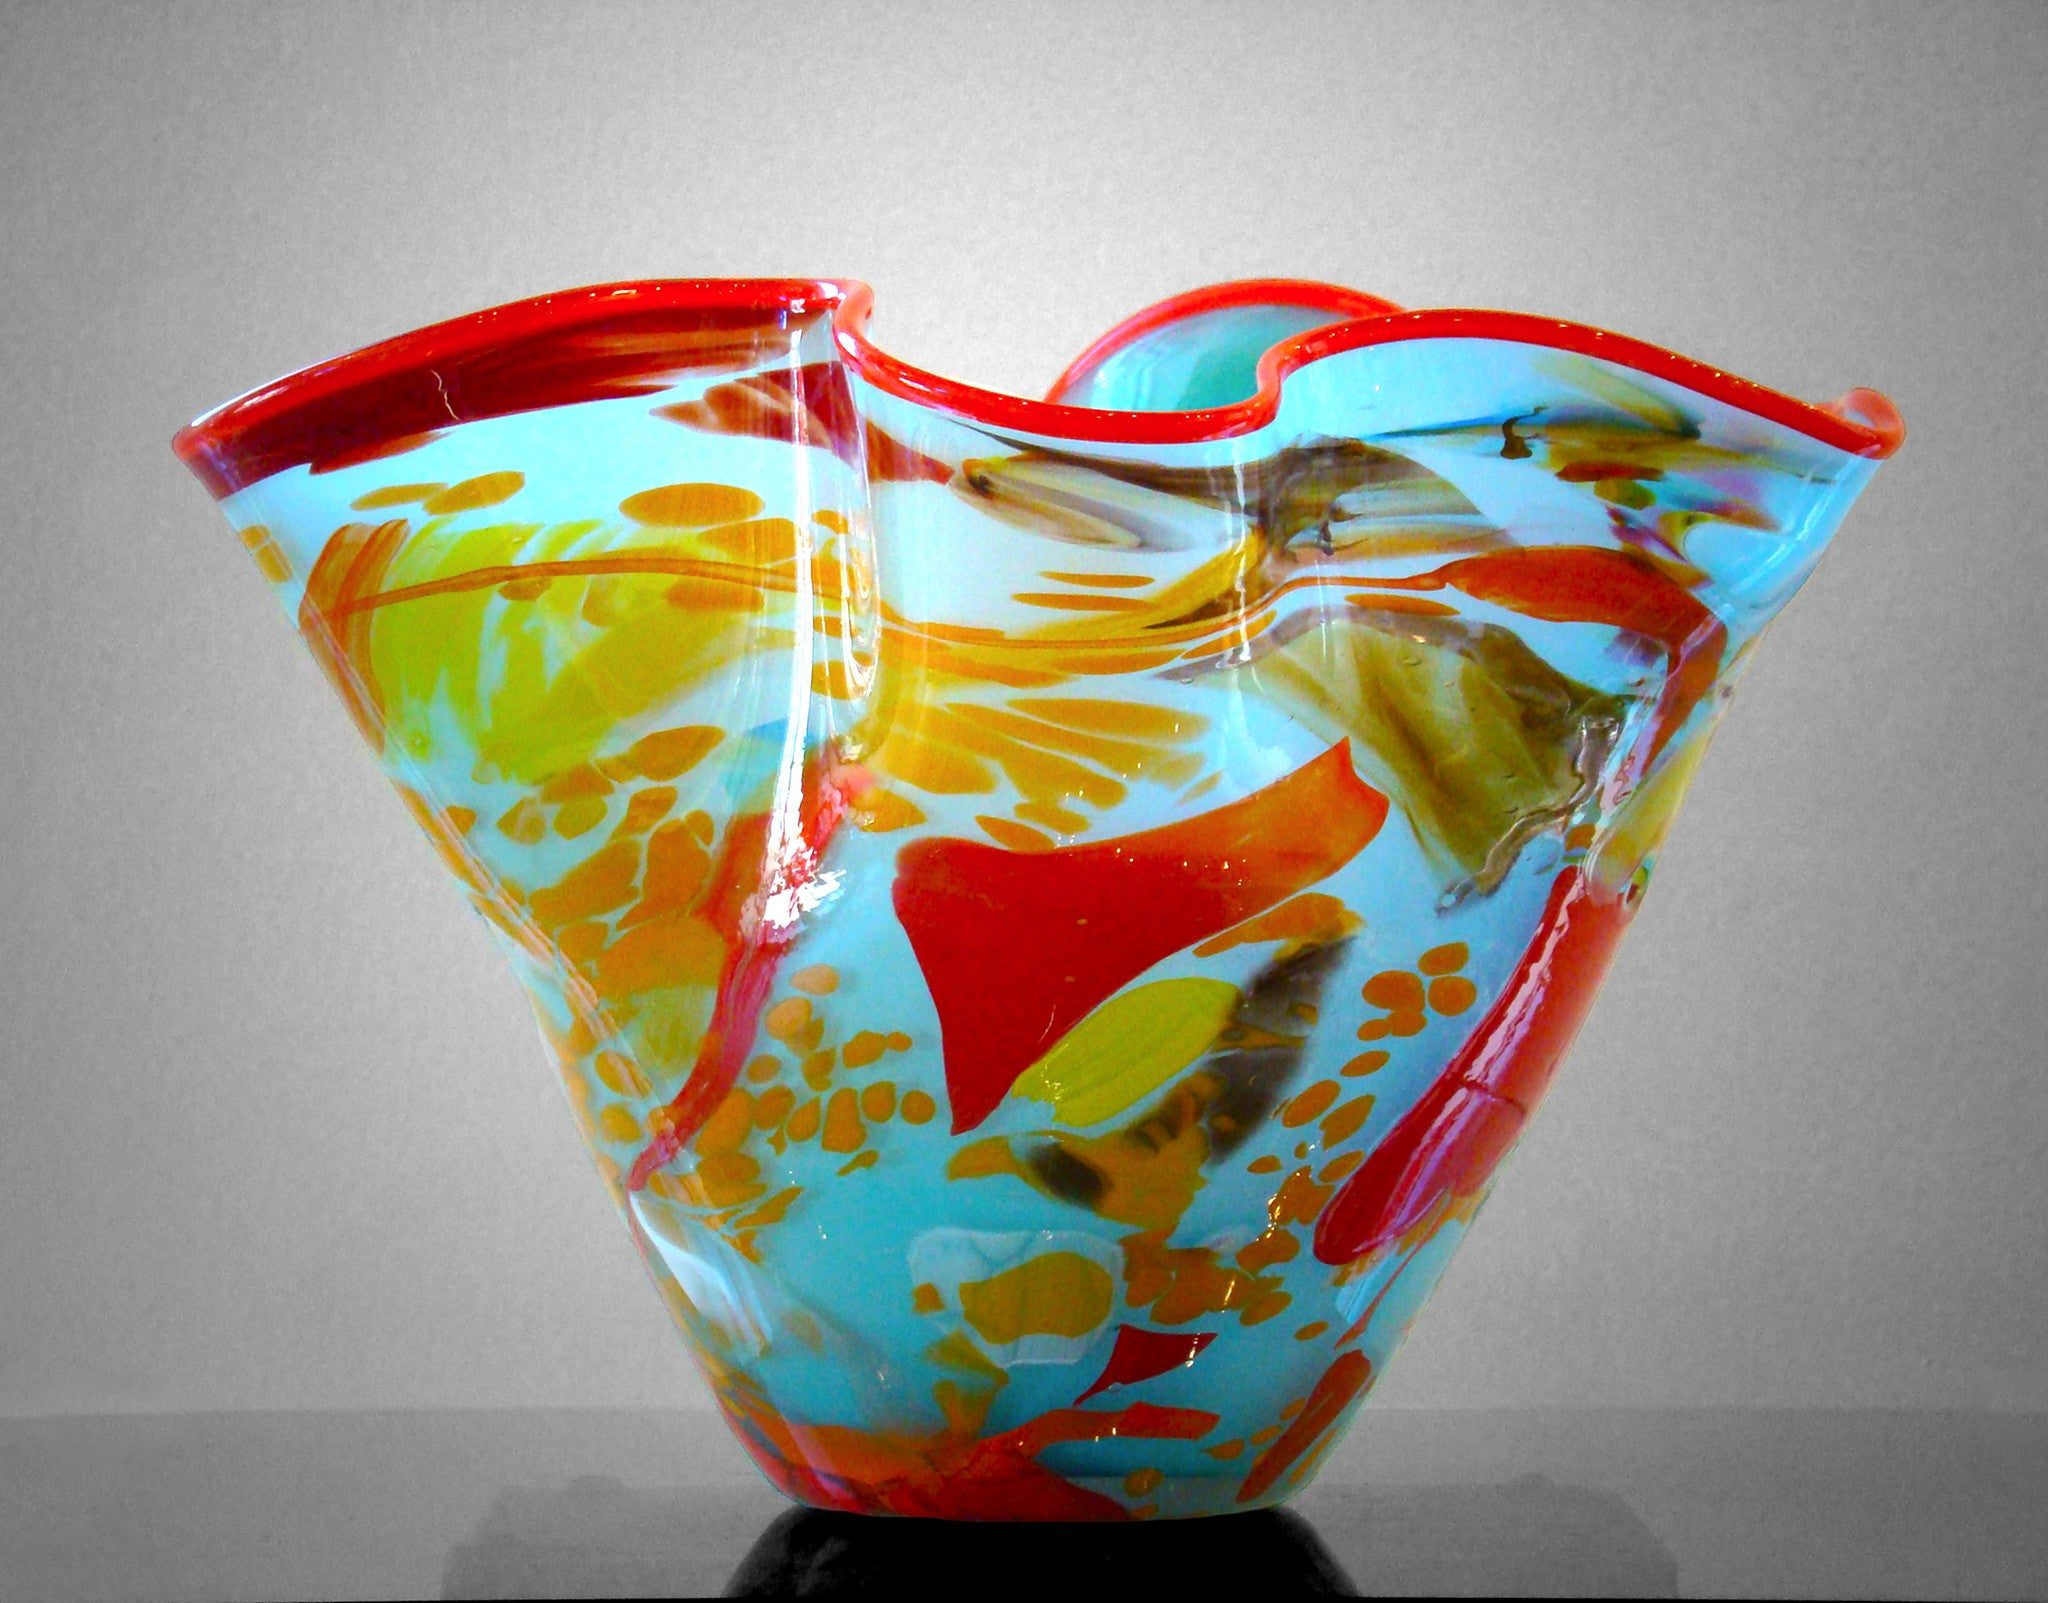 Fluted bowl / vase with broken shards of recycled glass and light blue base color and red rim